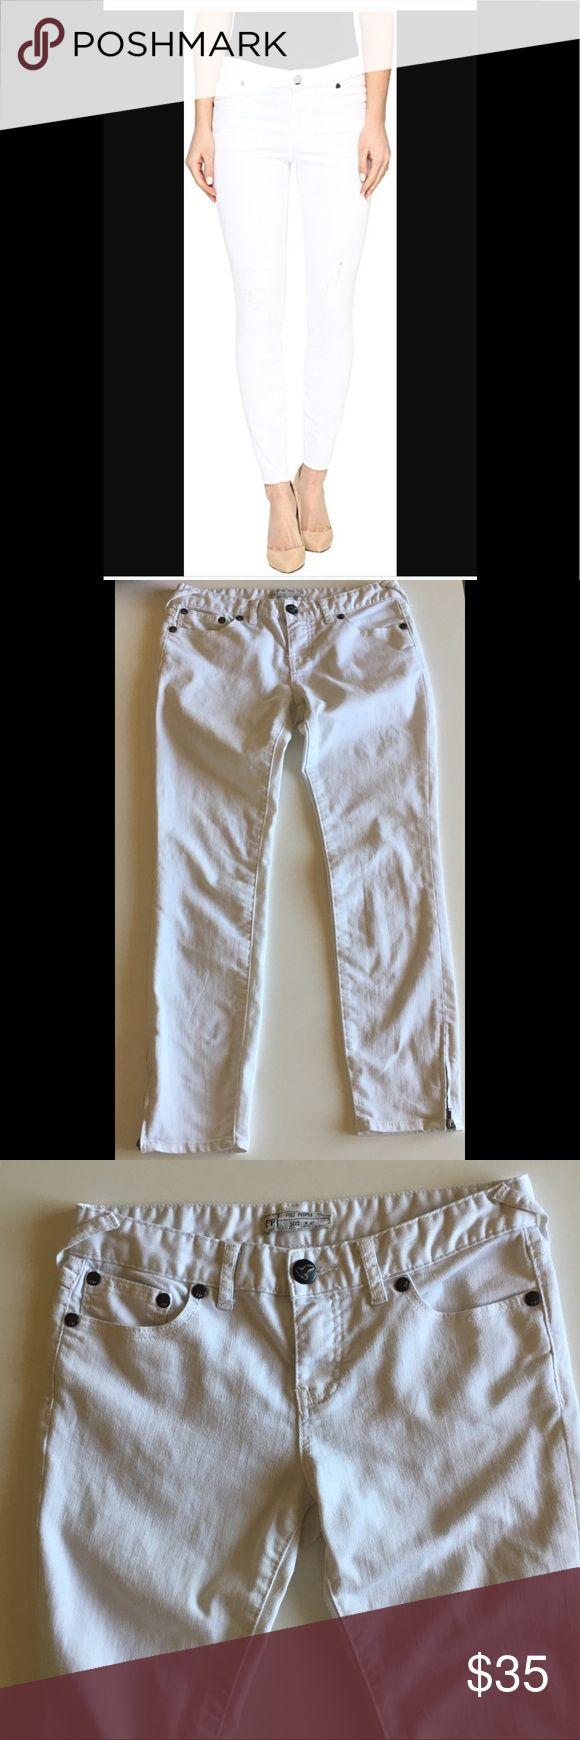 Free People Jeans Free people Jean Size 27  Color White With zippers on bottom sides Excellent Condition Free People Pants Skinny